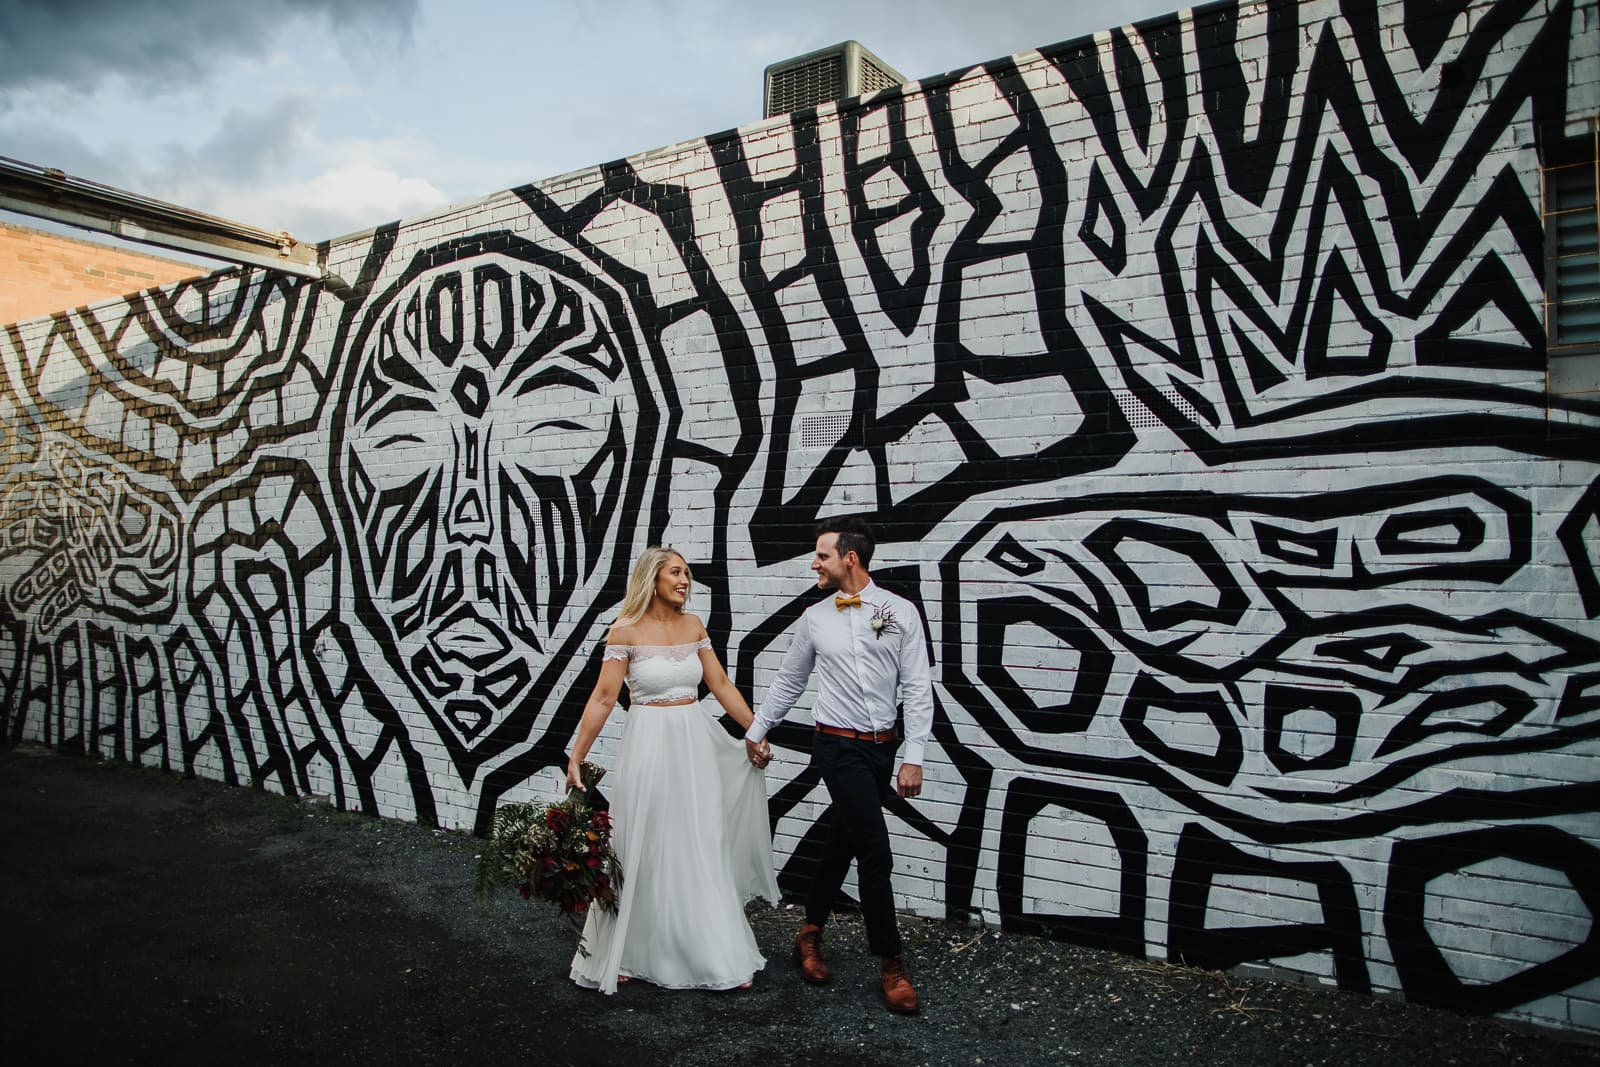 fun wedding photography - find the right photographer - Couple walking in Melbourne infront of black and white graffiti wall at fun wedding